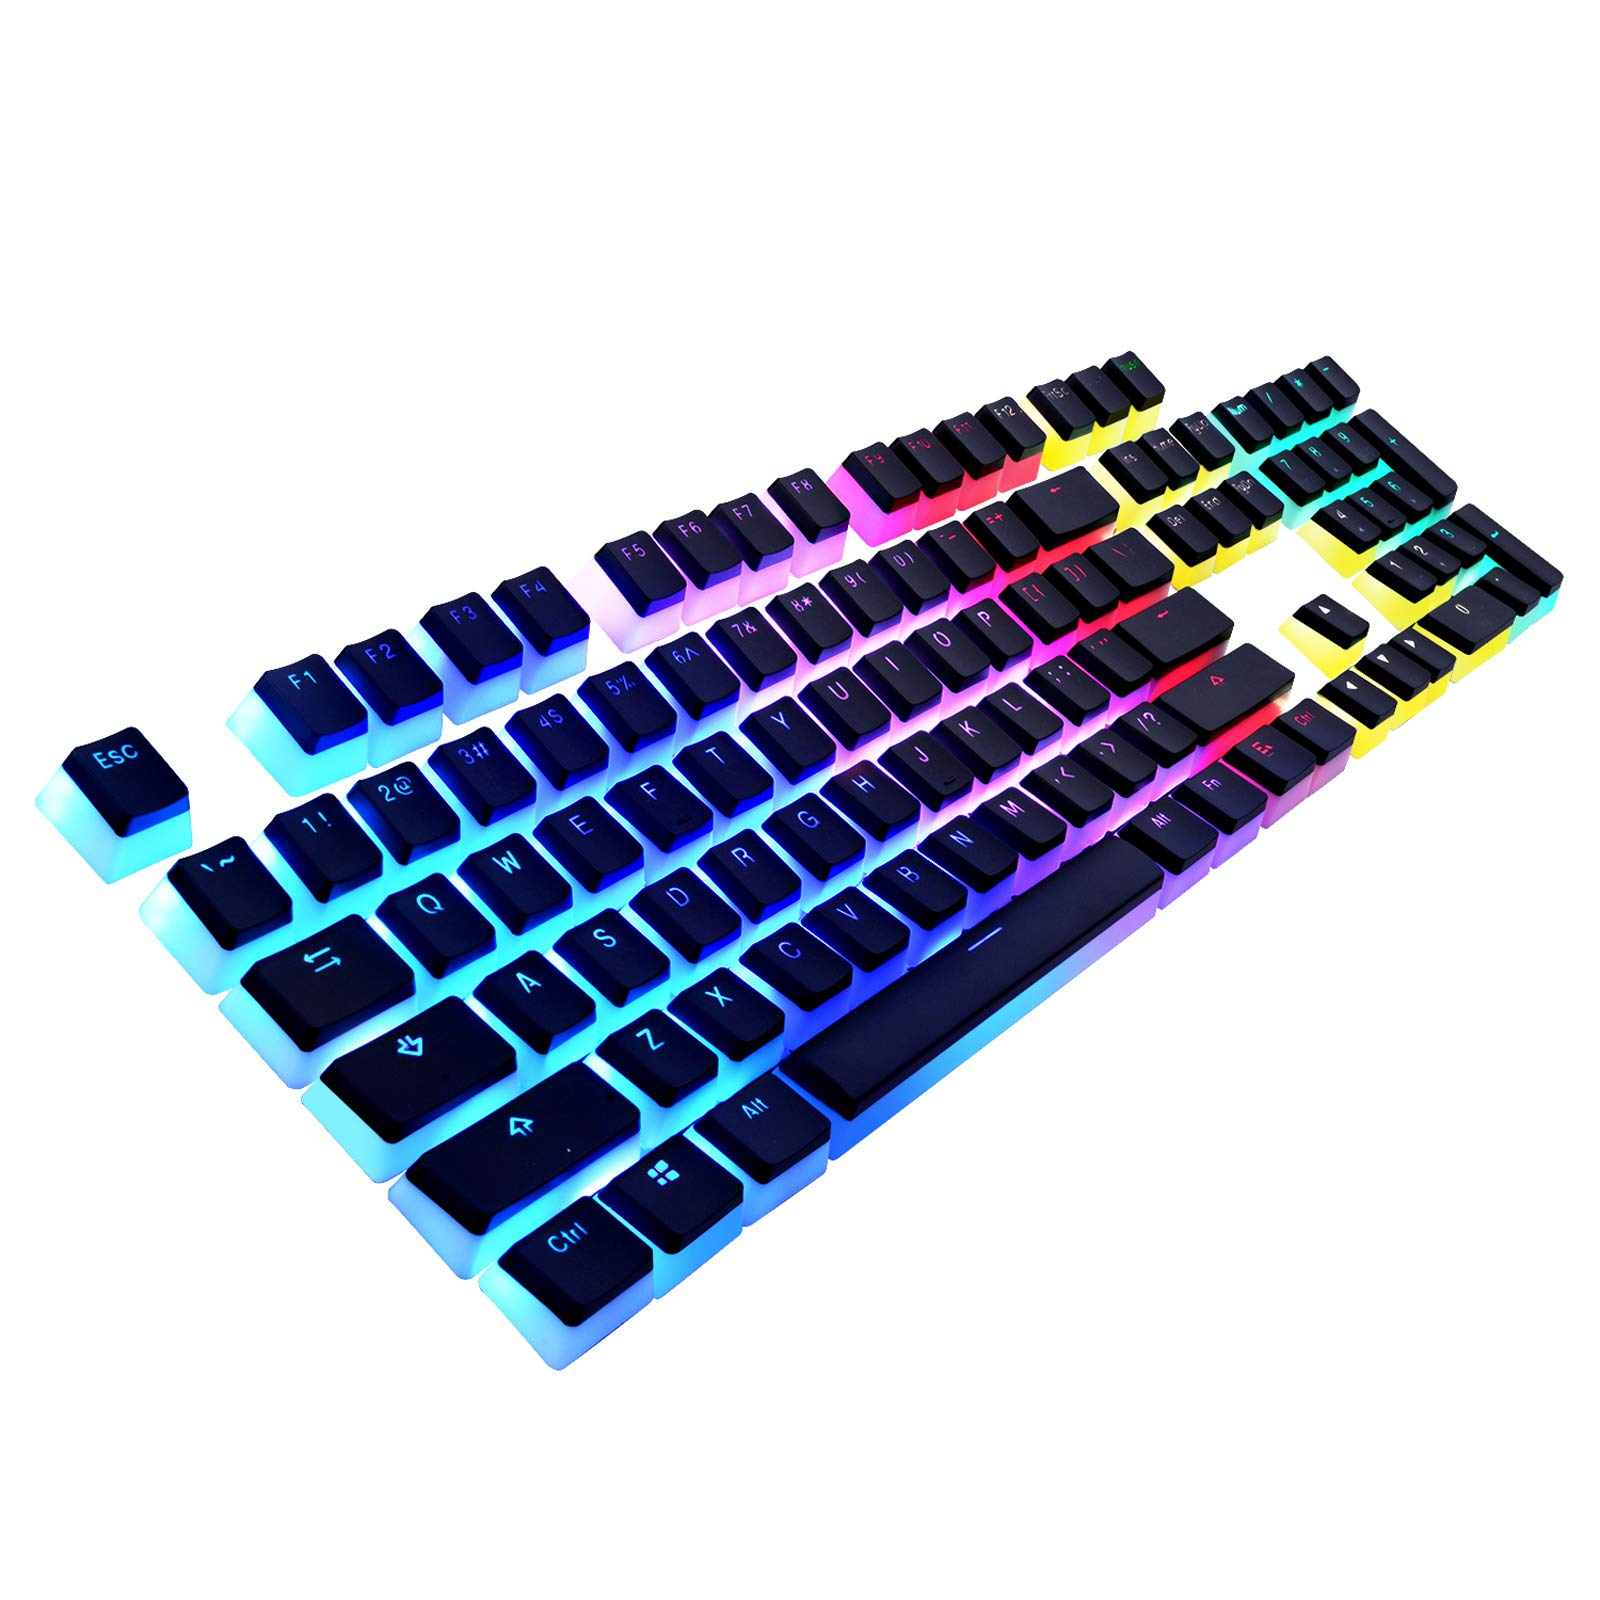 Havit Keycaps 60 87 104 Double Shot Backlit PBT Pudding Keycap Set with Puller for DIY Cherry MX RGB Mechanical Keyboard (Black)